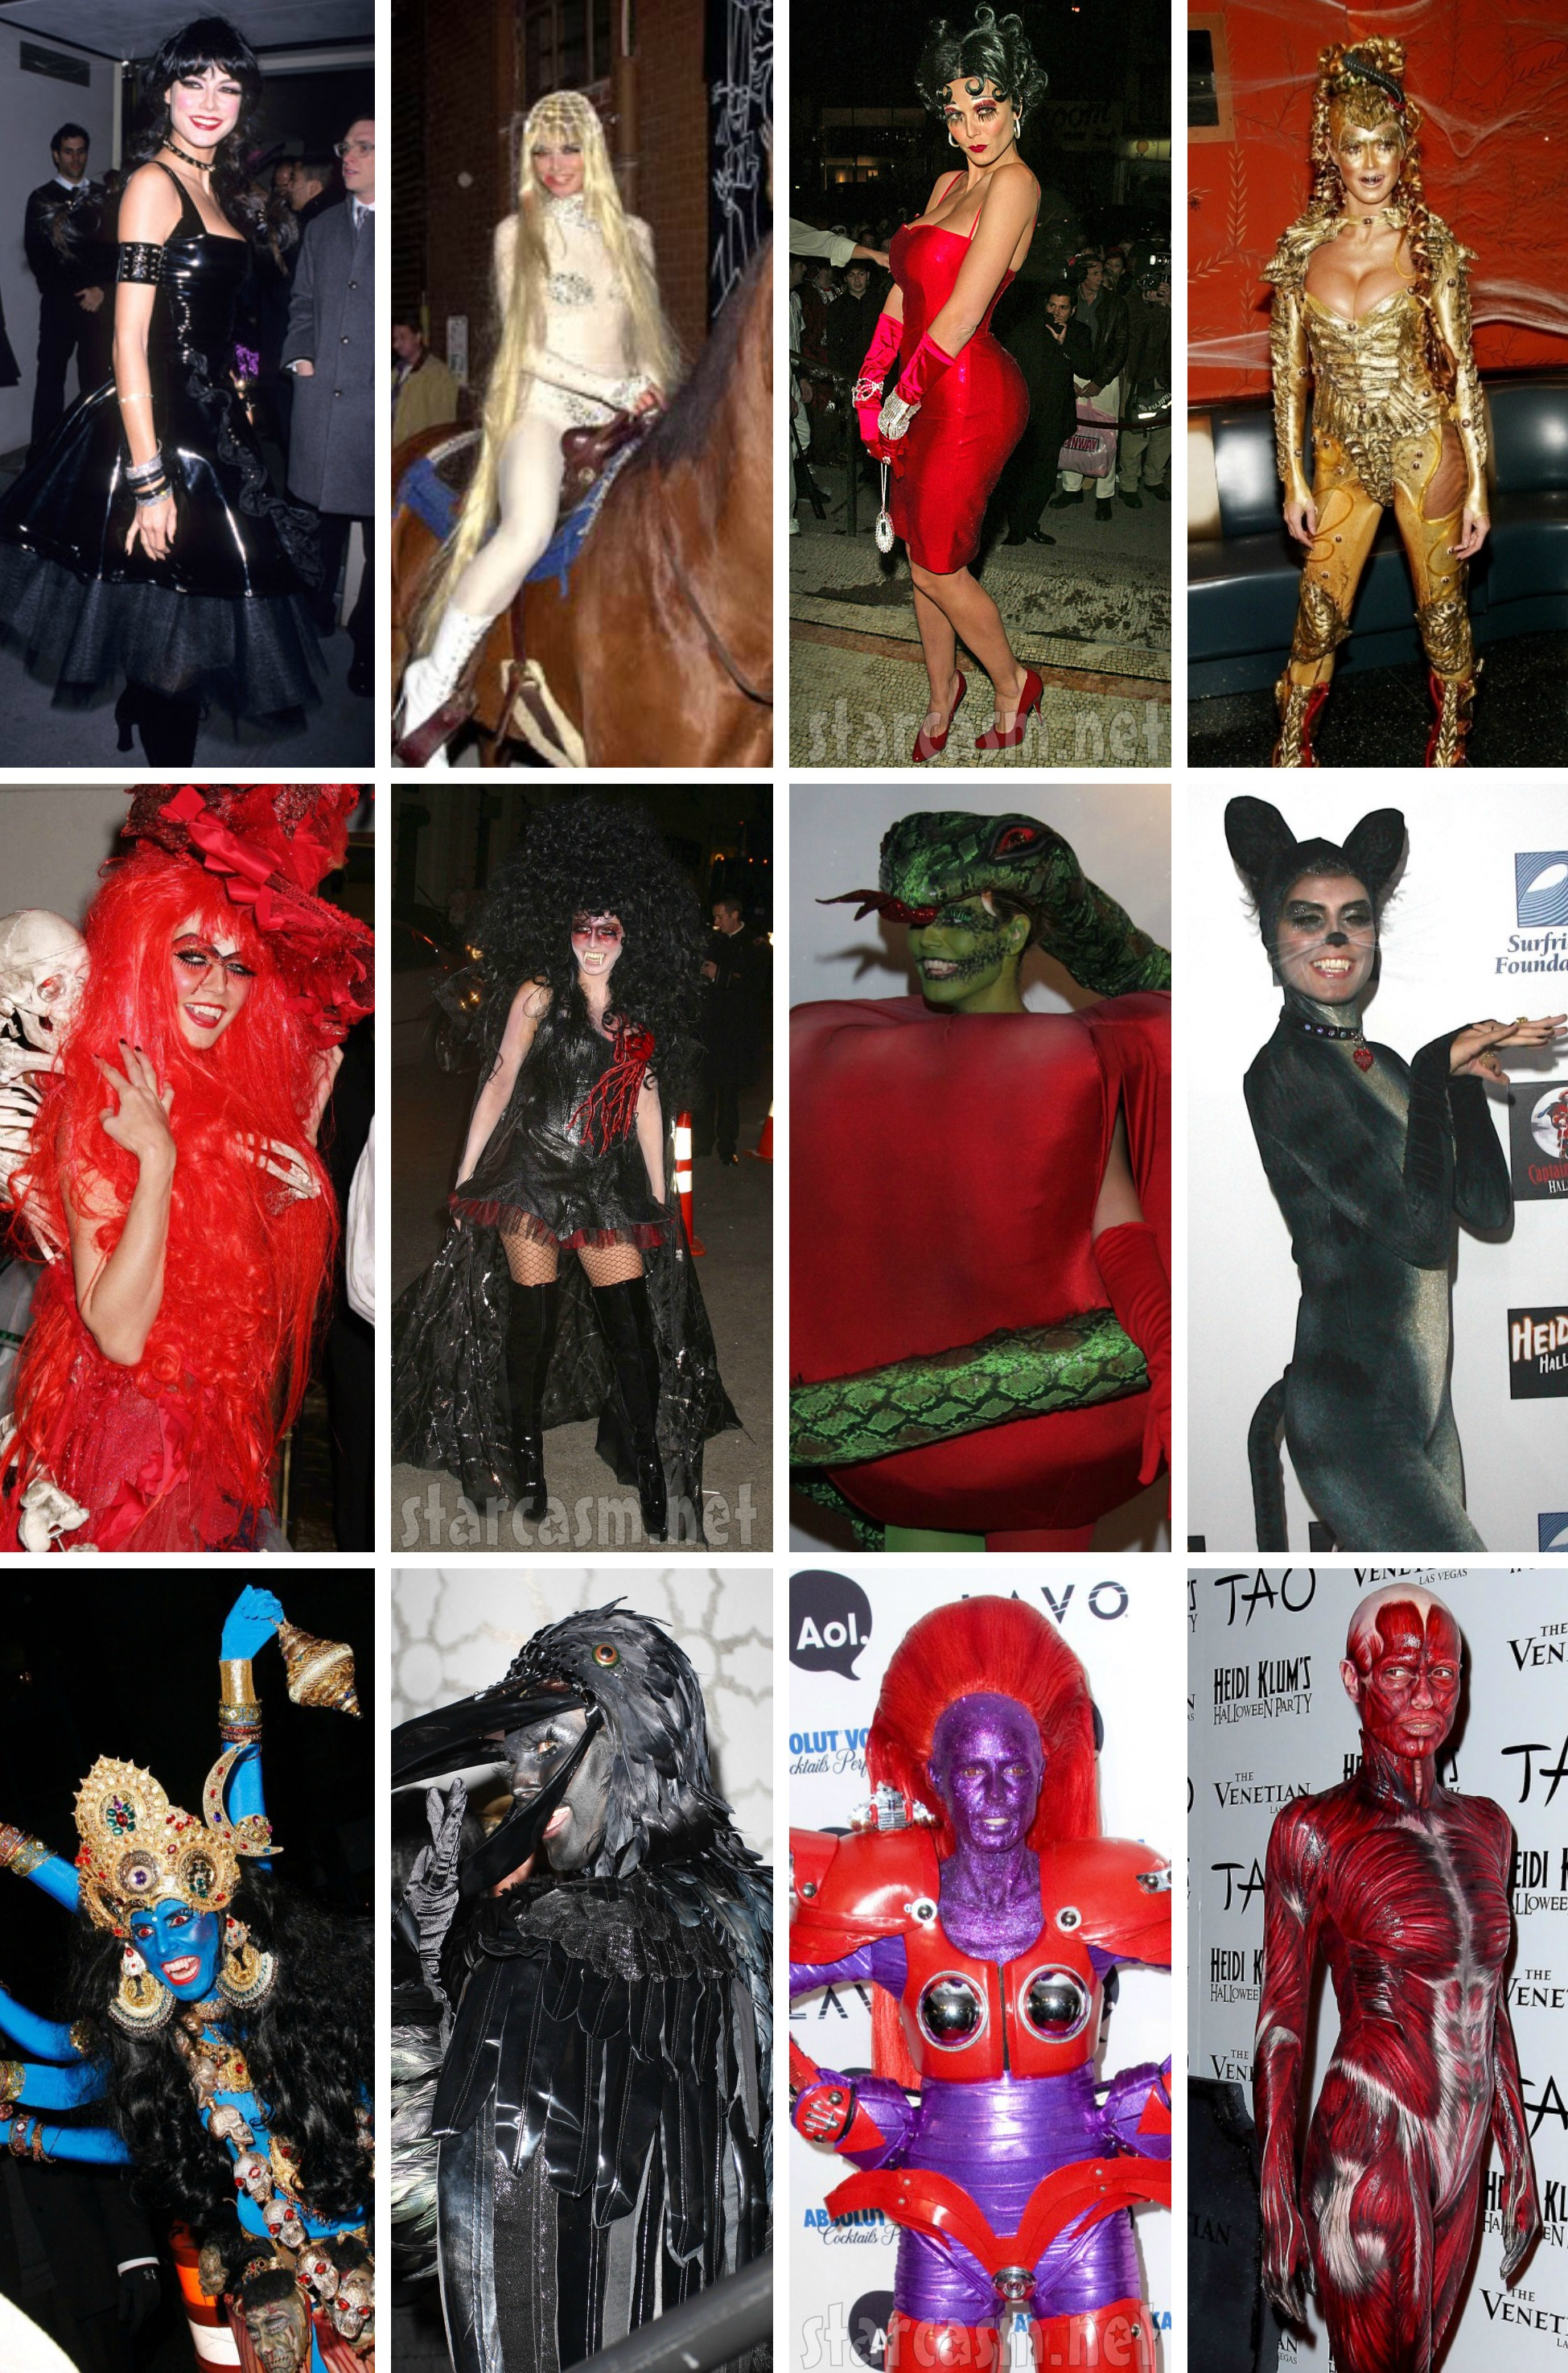 Celebrity Costumes Archives - Page 2 of 6 - starcasm.